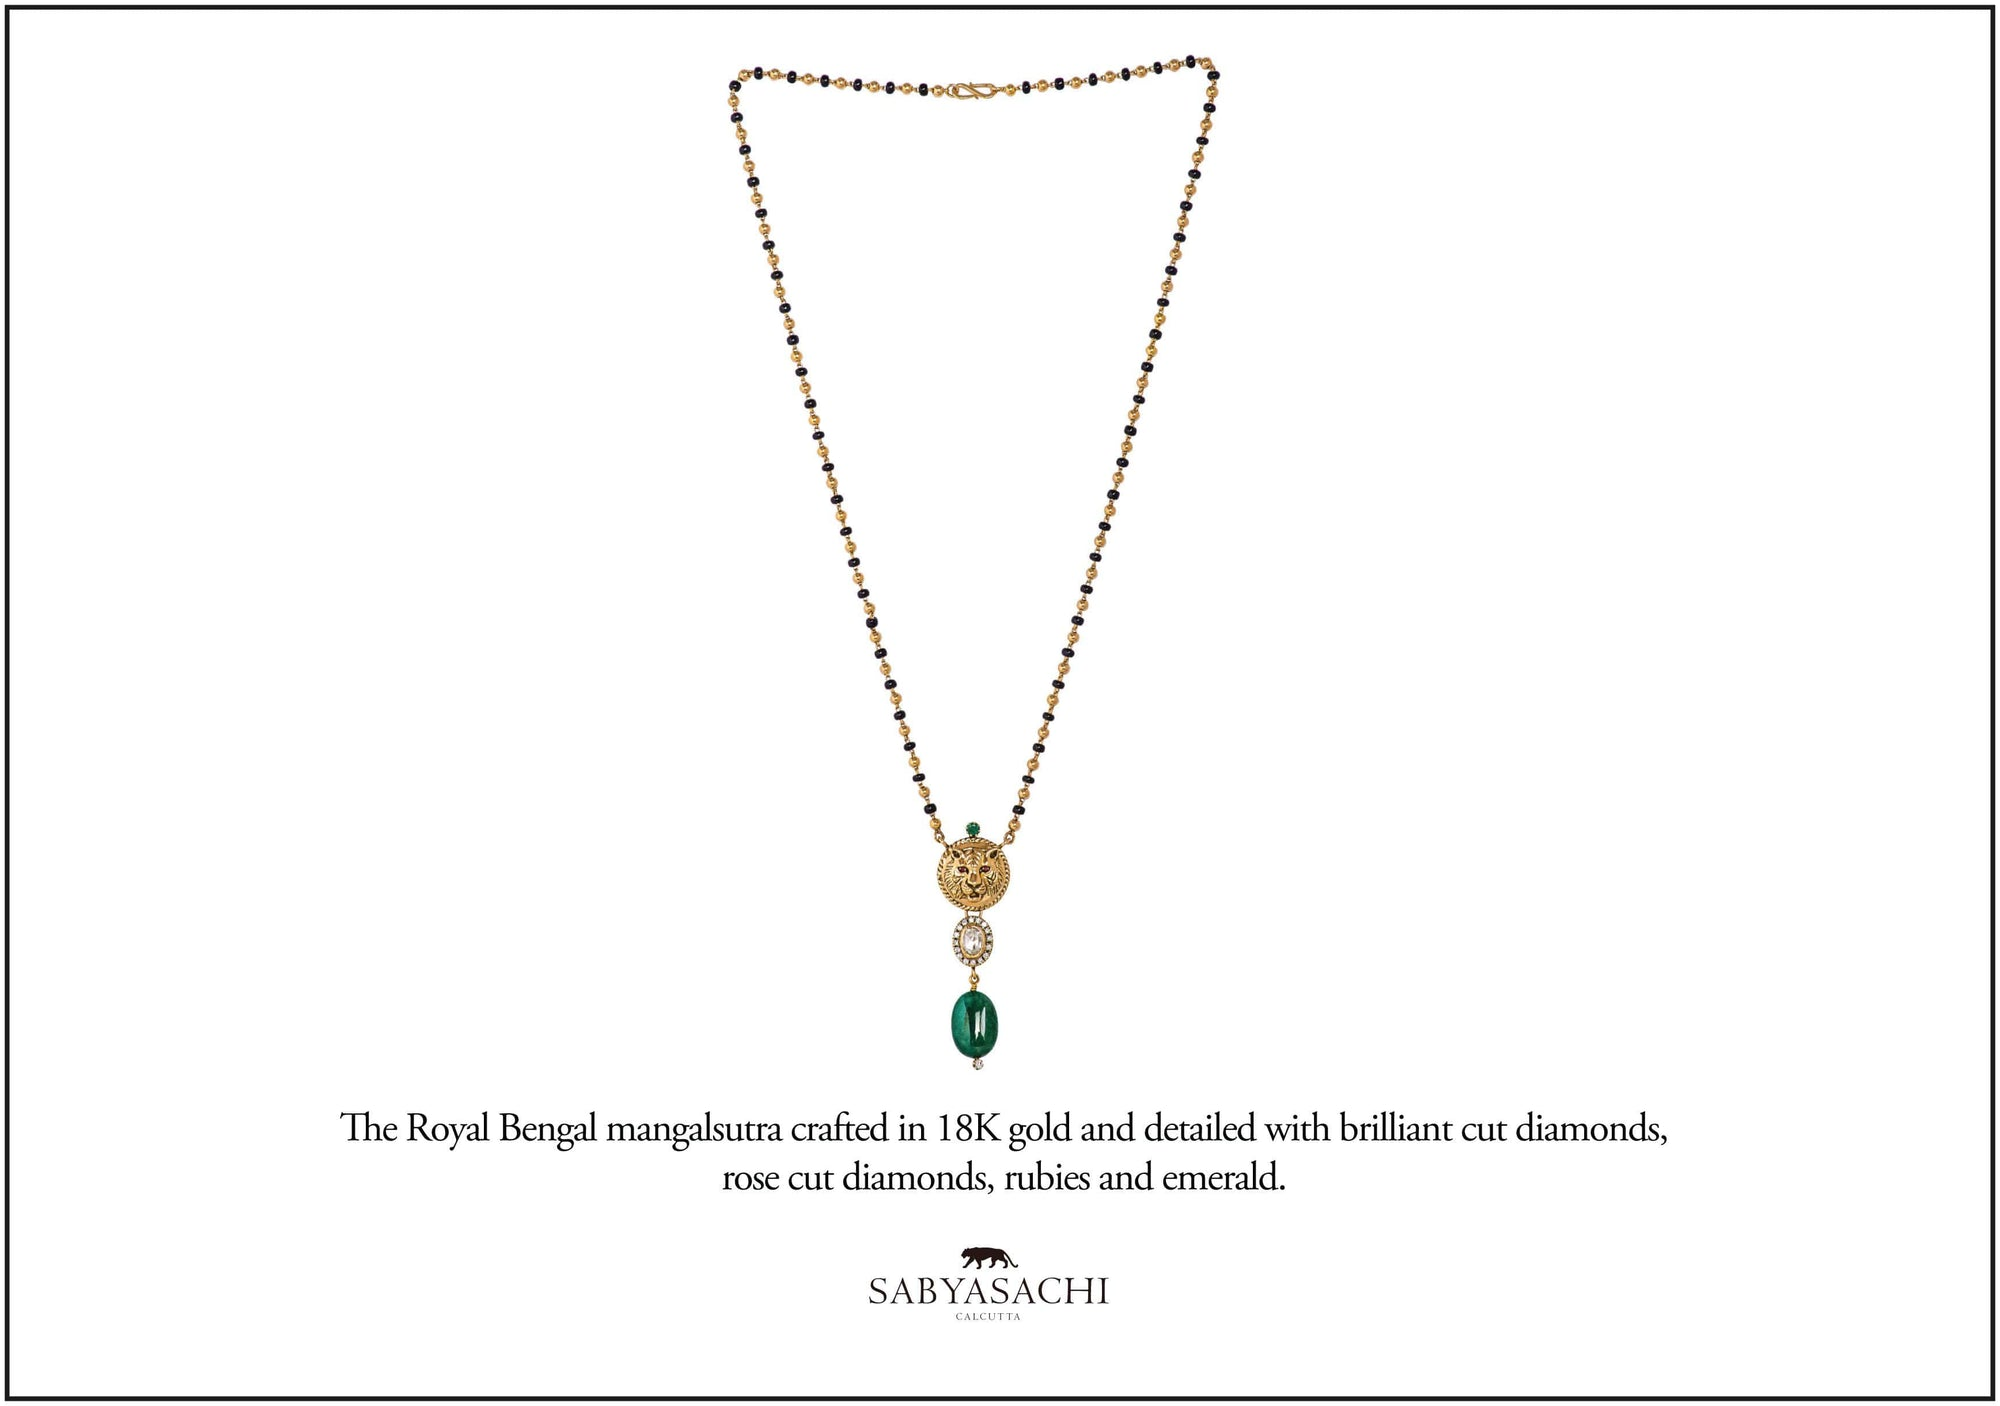 Sabyasachi Fine Jewellery 18K Gold Royal Bengal mangalsutra crafted